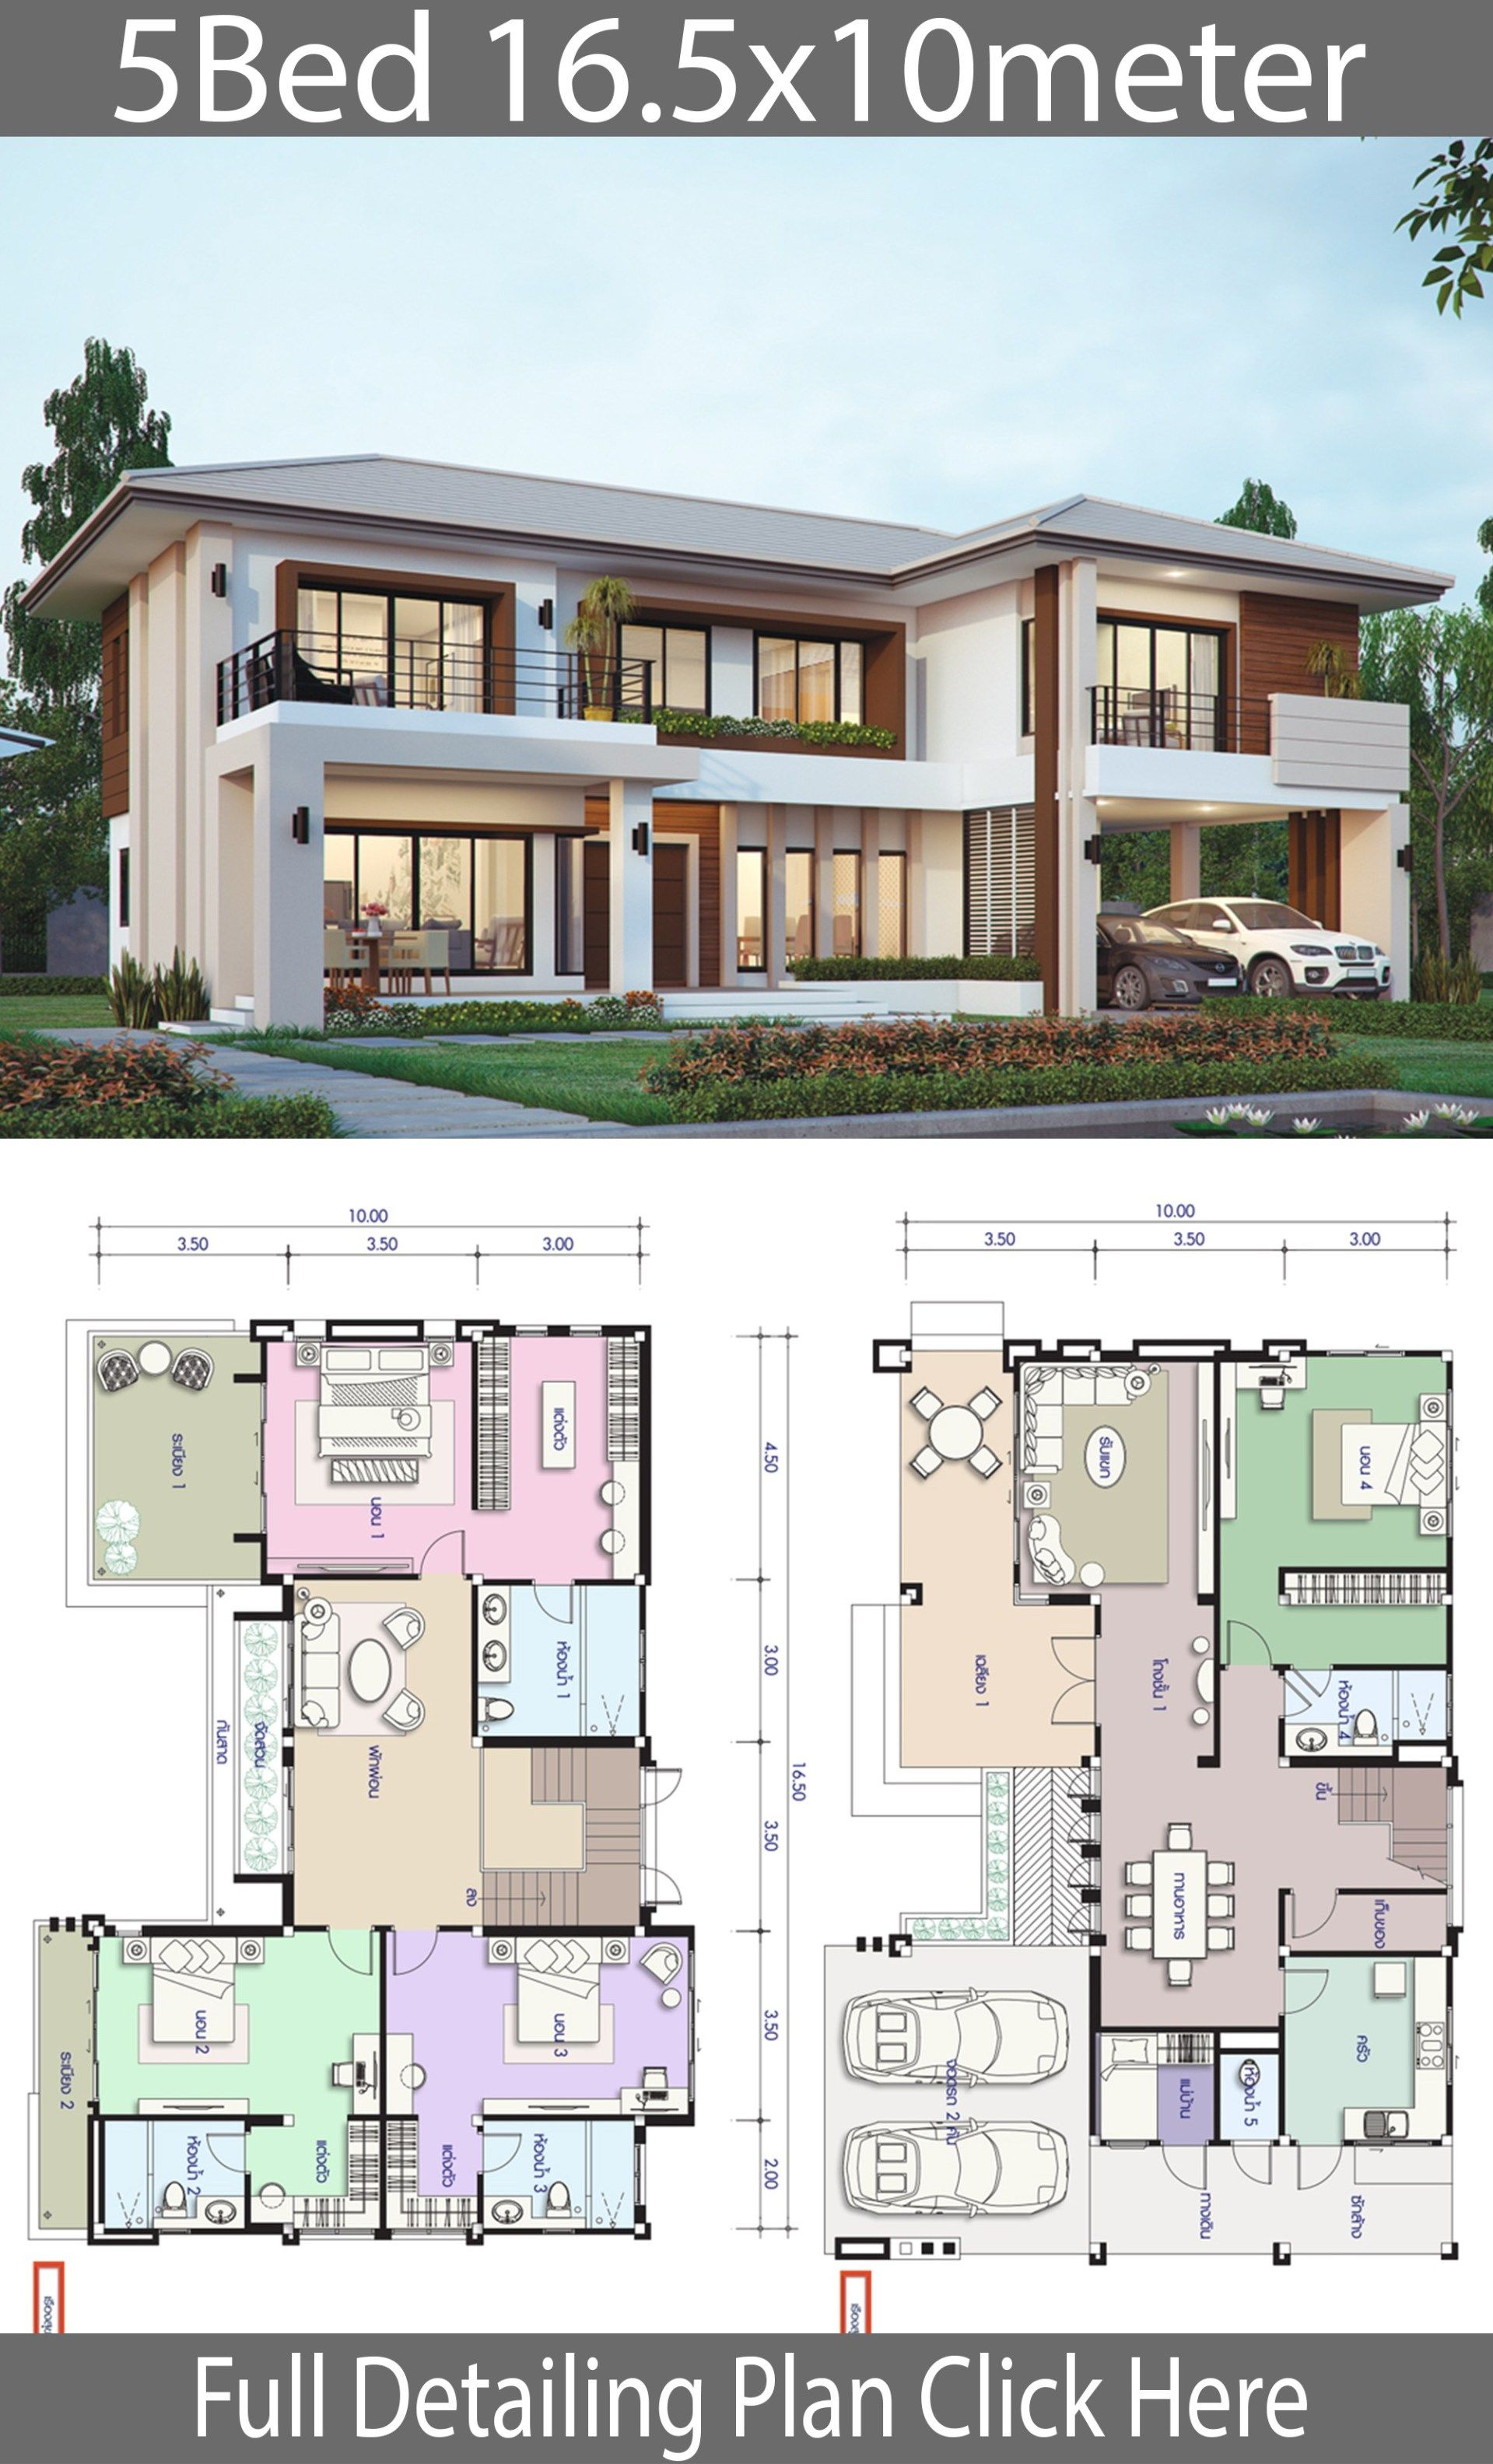 House Design Plan 16 5x10m With 5 Bedrooms Home Ideas House Projects Architecture Sims House Plans Architectural House Plans